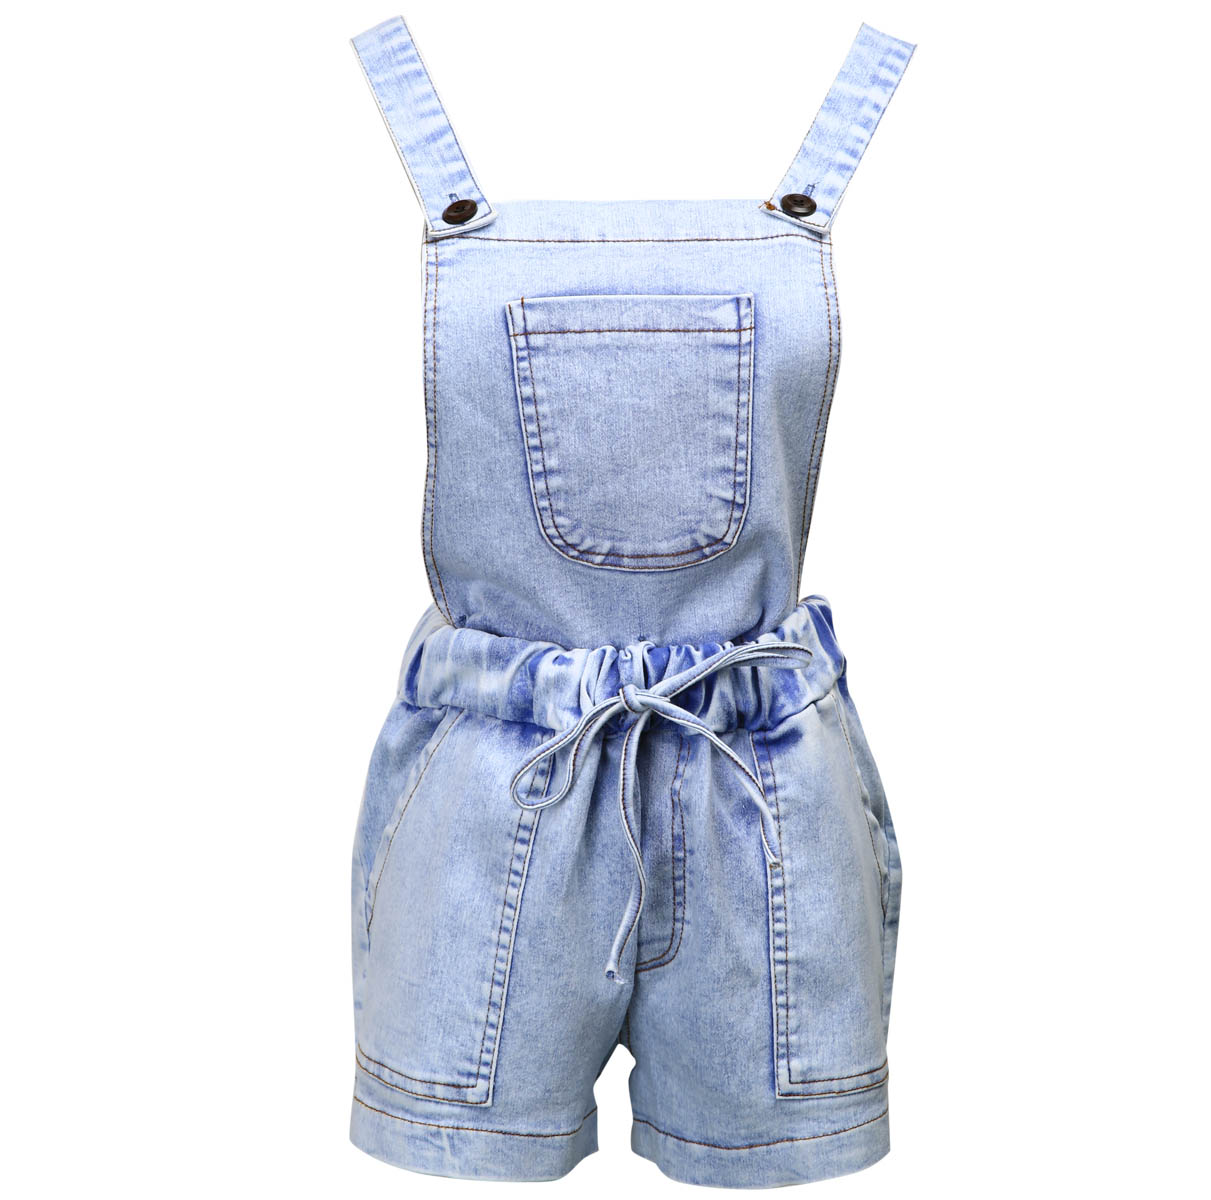 New Women Lady Sexy Hot Pants Summer Acid Wash Elastic High Waist Overall  Shorts Fashion Pocket - Online Buy Wholesale High Waisted Acid Wash Jeans From China High